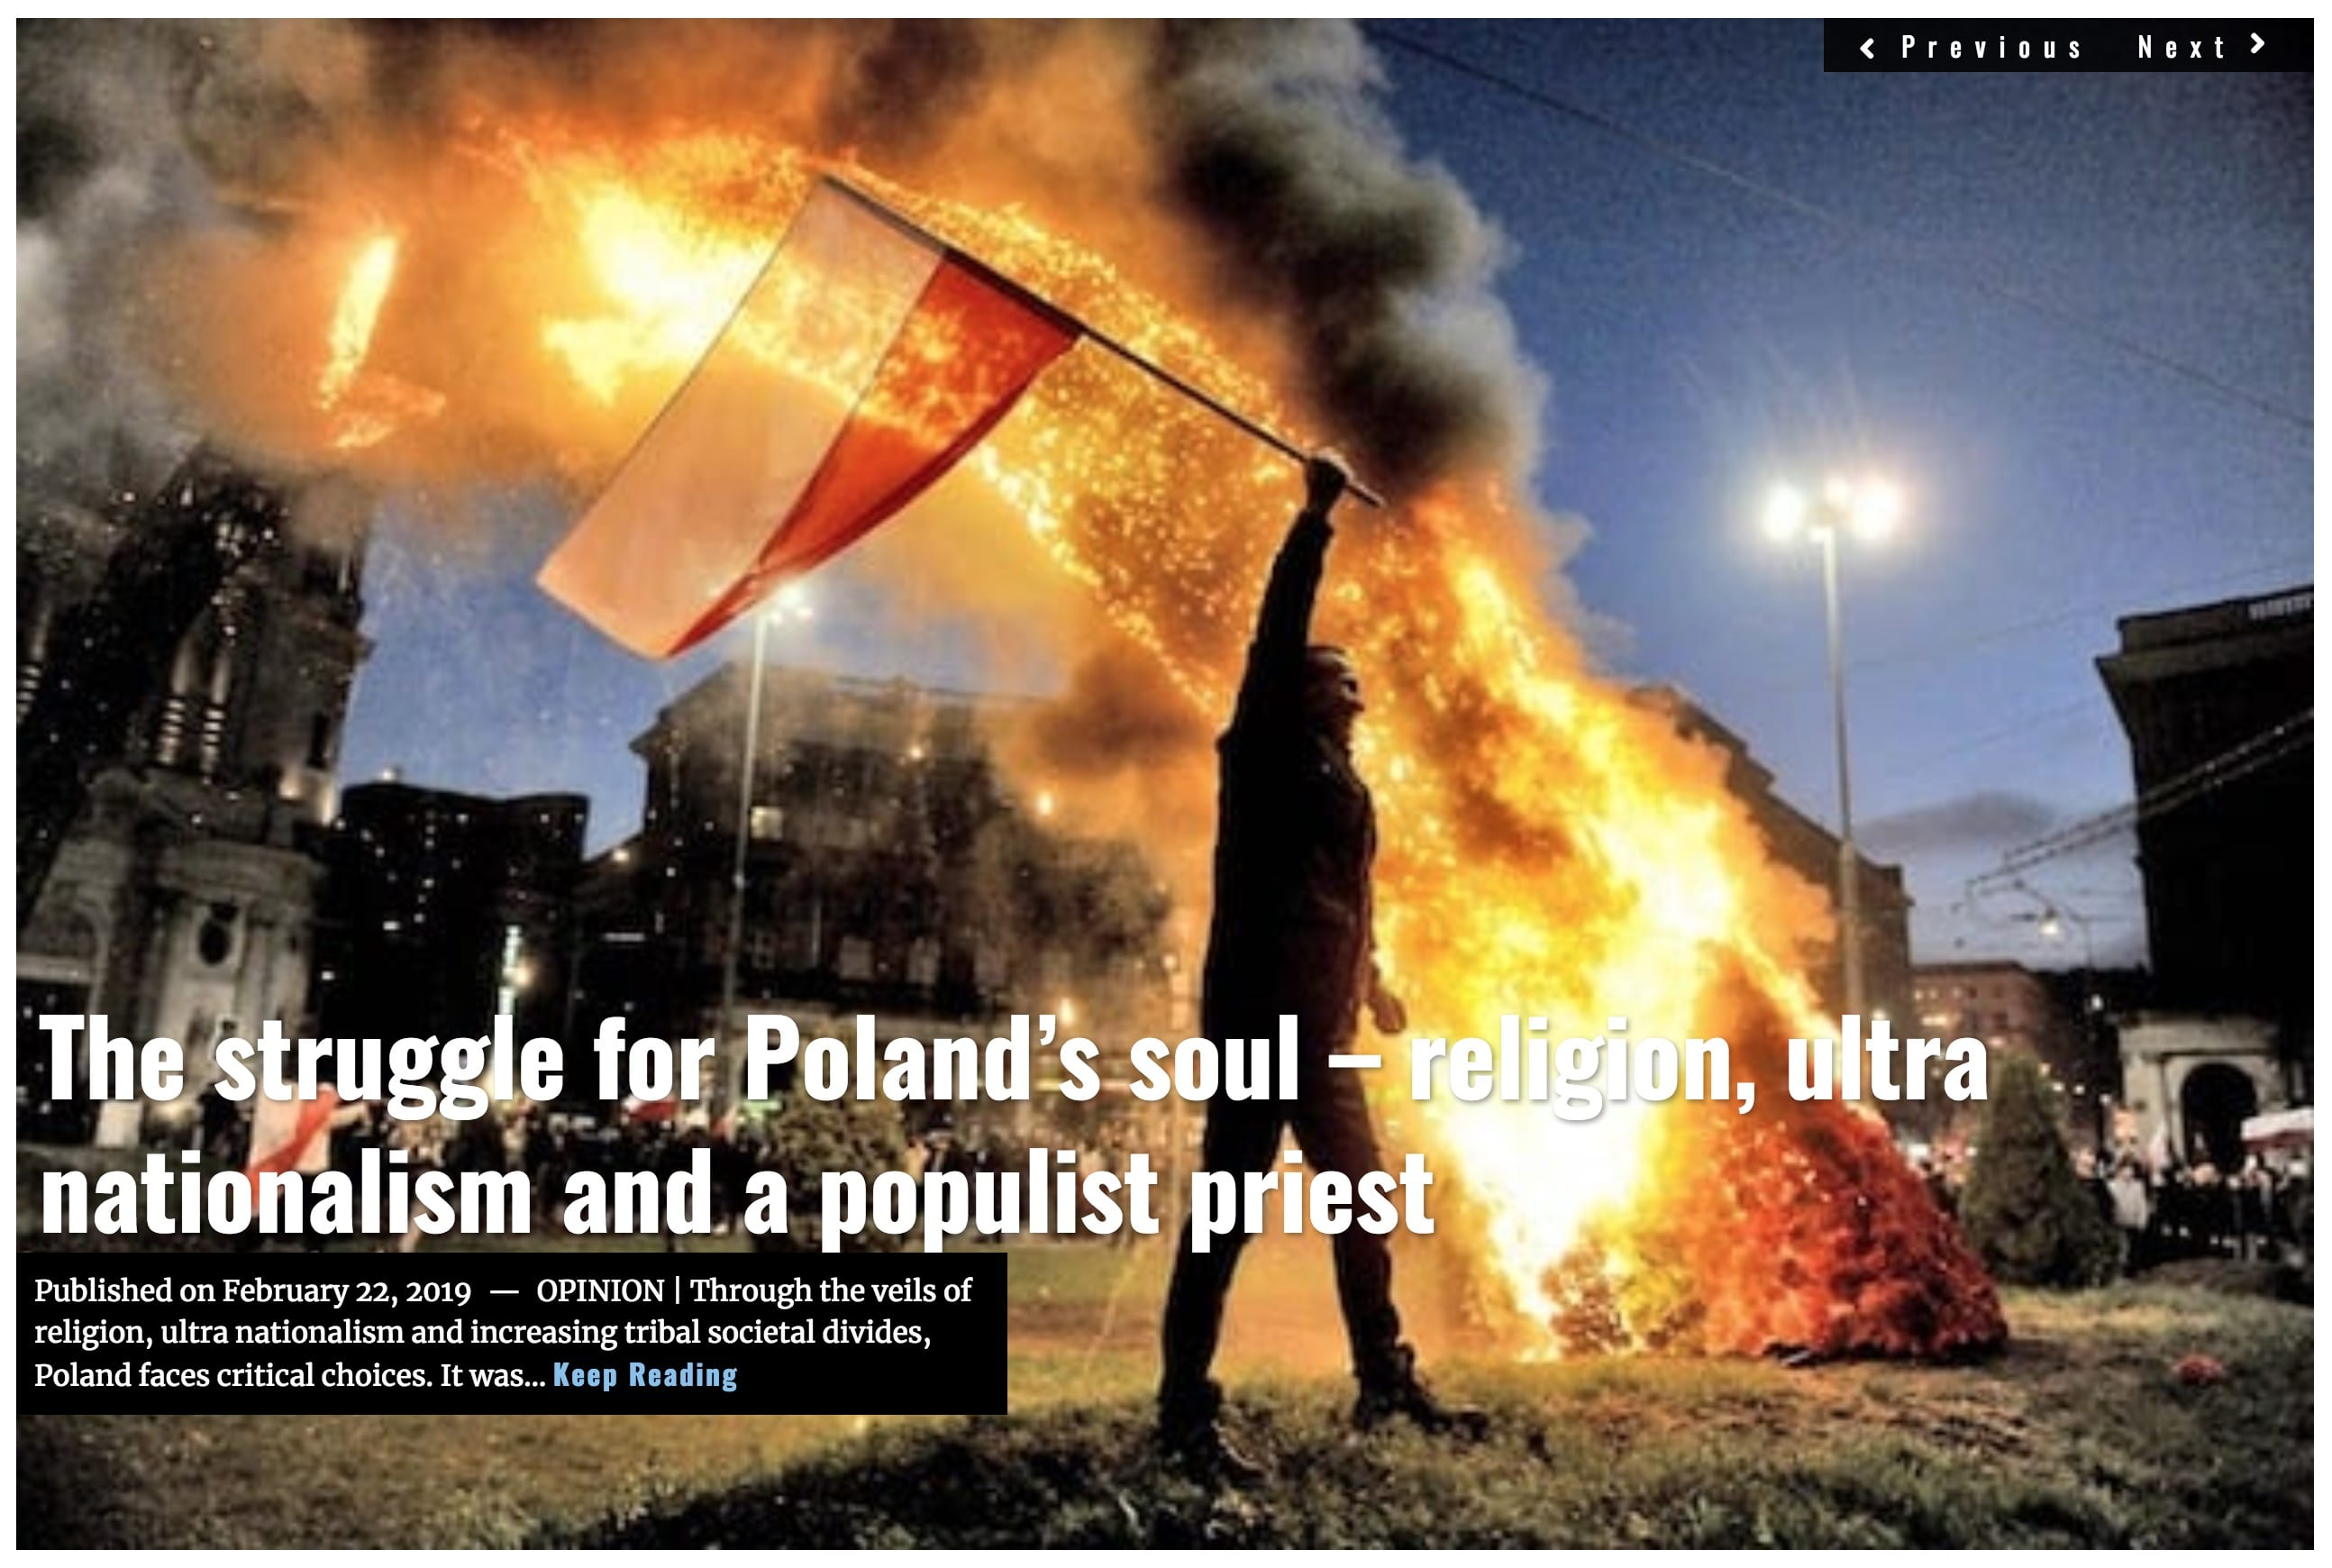 Image Lima Charlie News Headline Struggle for Poland's Soul Sjoholm FEB 22 2019